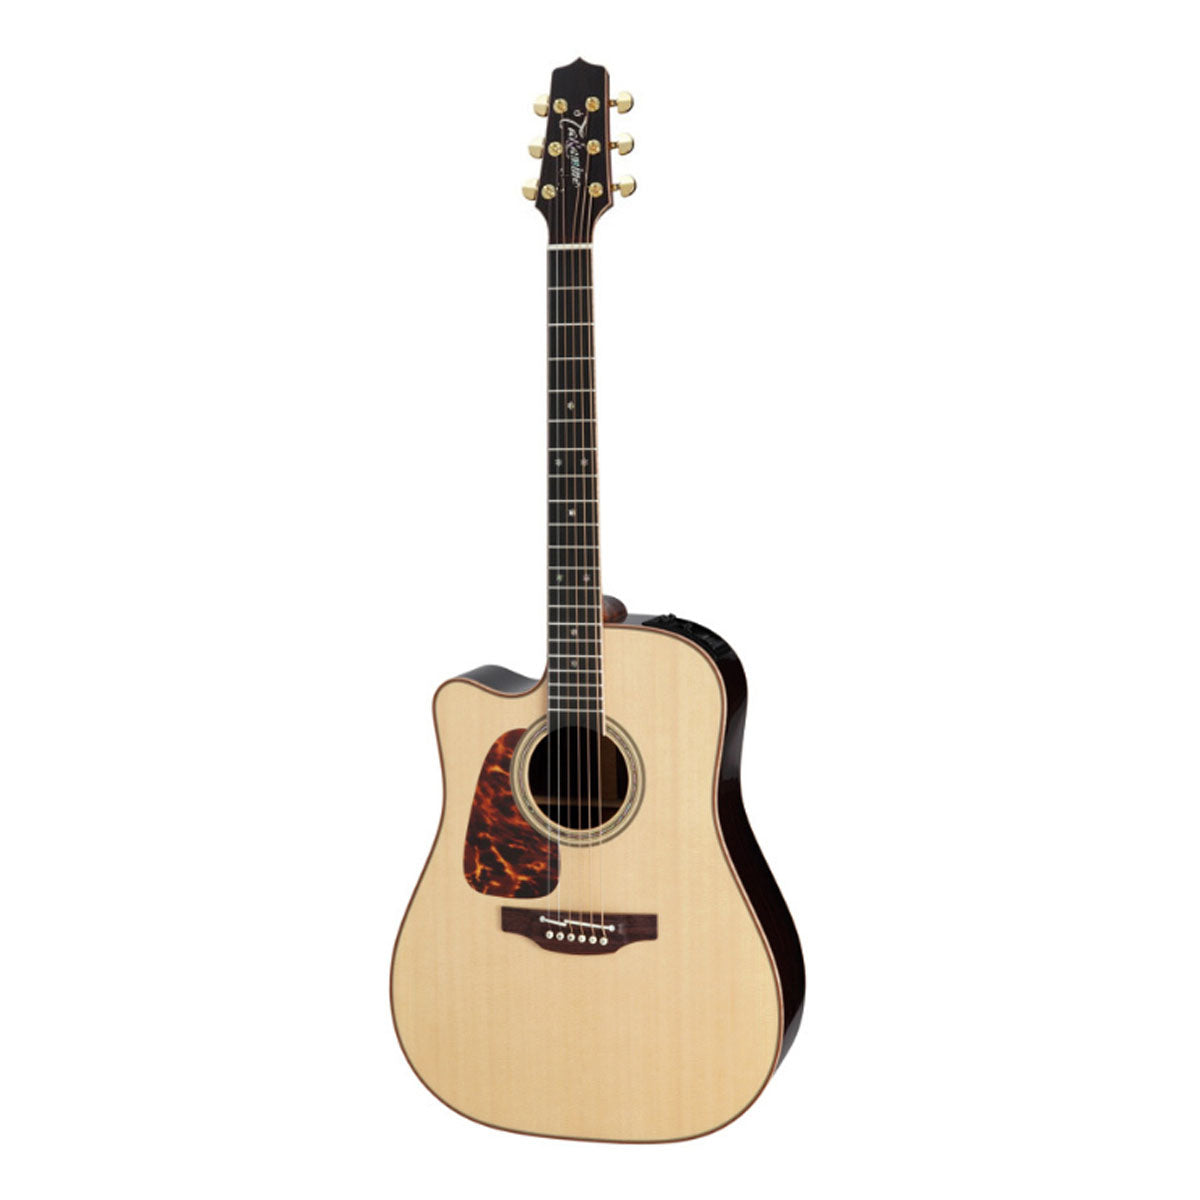 Takamine P7DC Pro Series 7 Acoustic Guitar Left Handed Dreadnought Natural w/ Pickup